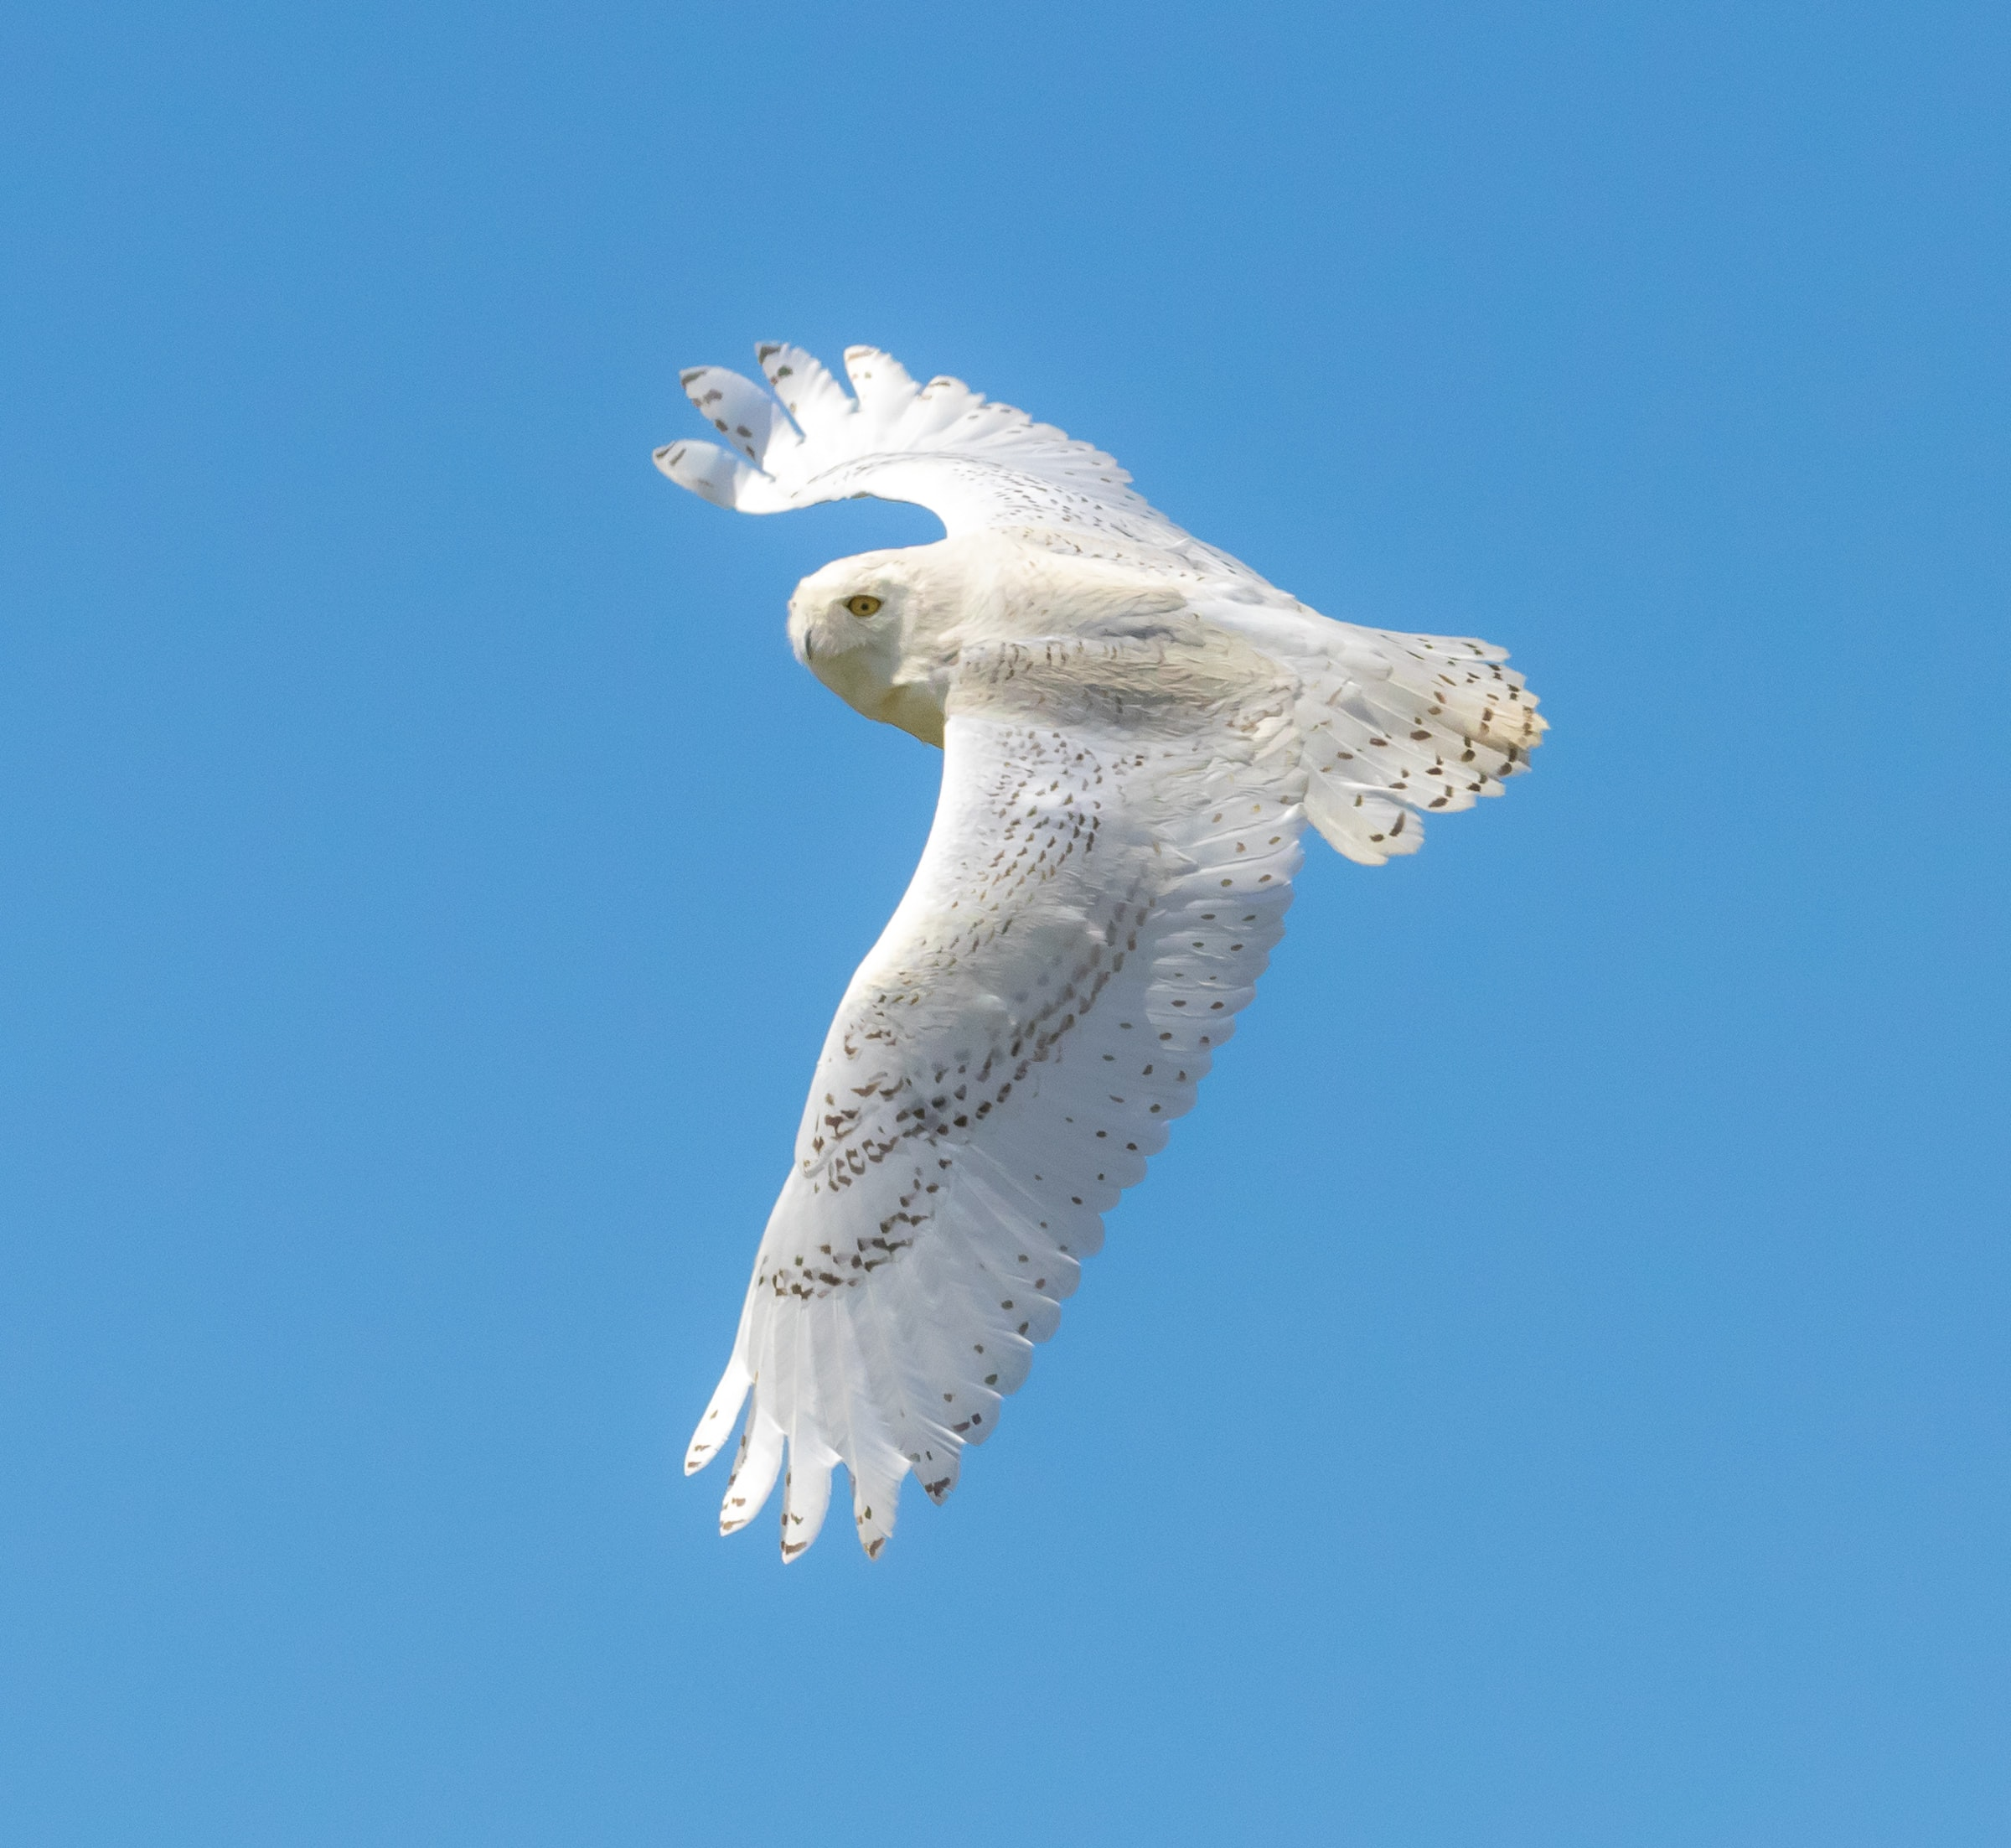 closeup photo of flying white owl